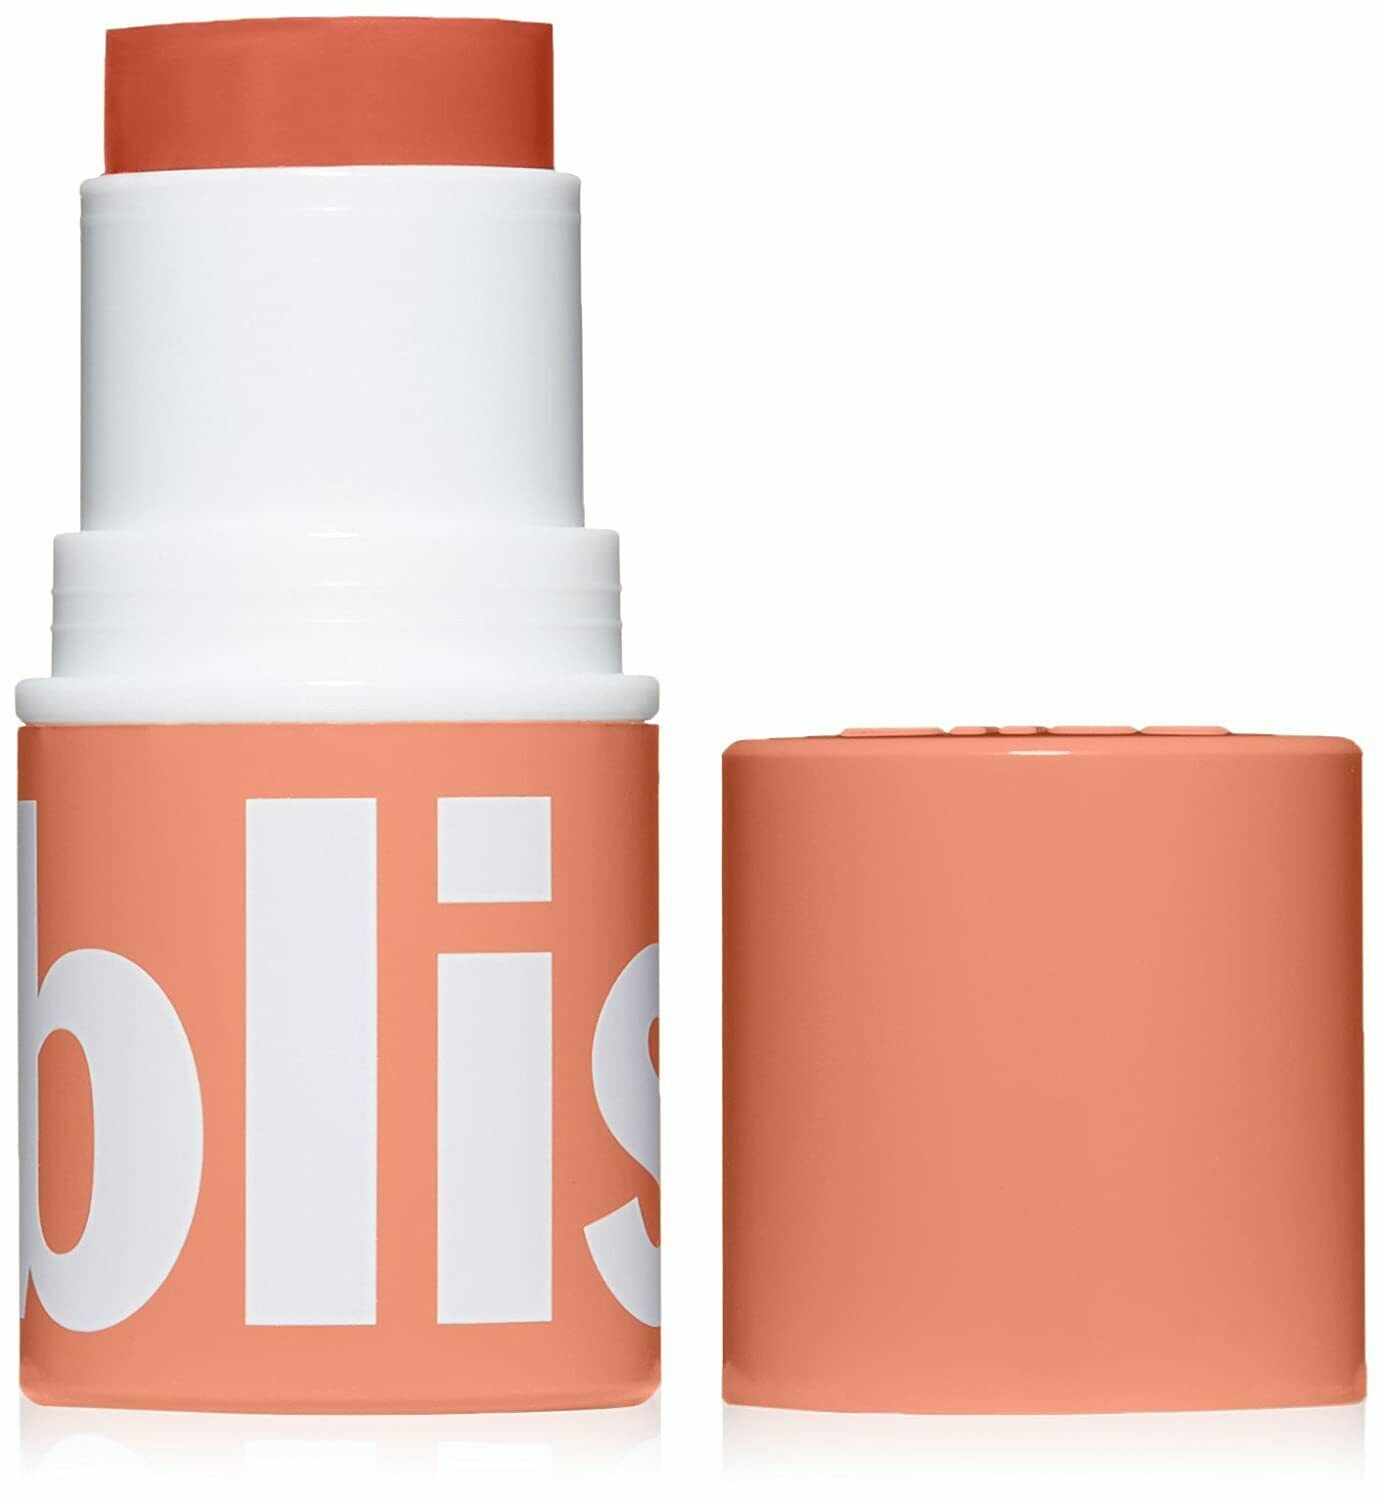 Primary image for bliss Bang Pow Tinted Lip Balm (LOT OF 2)